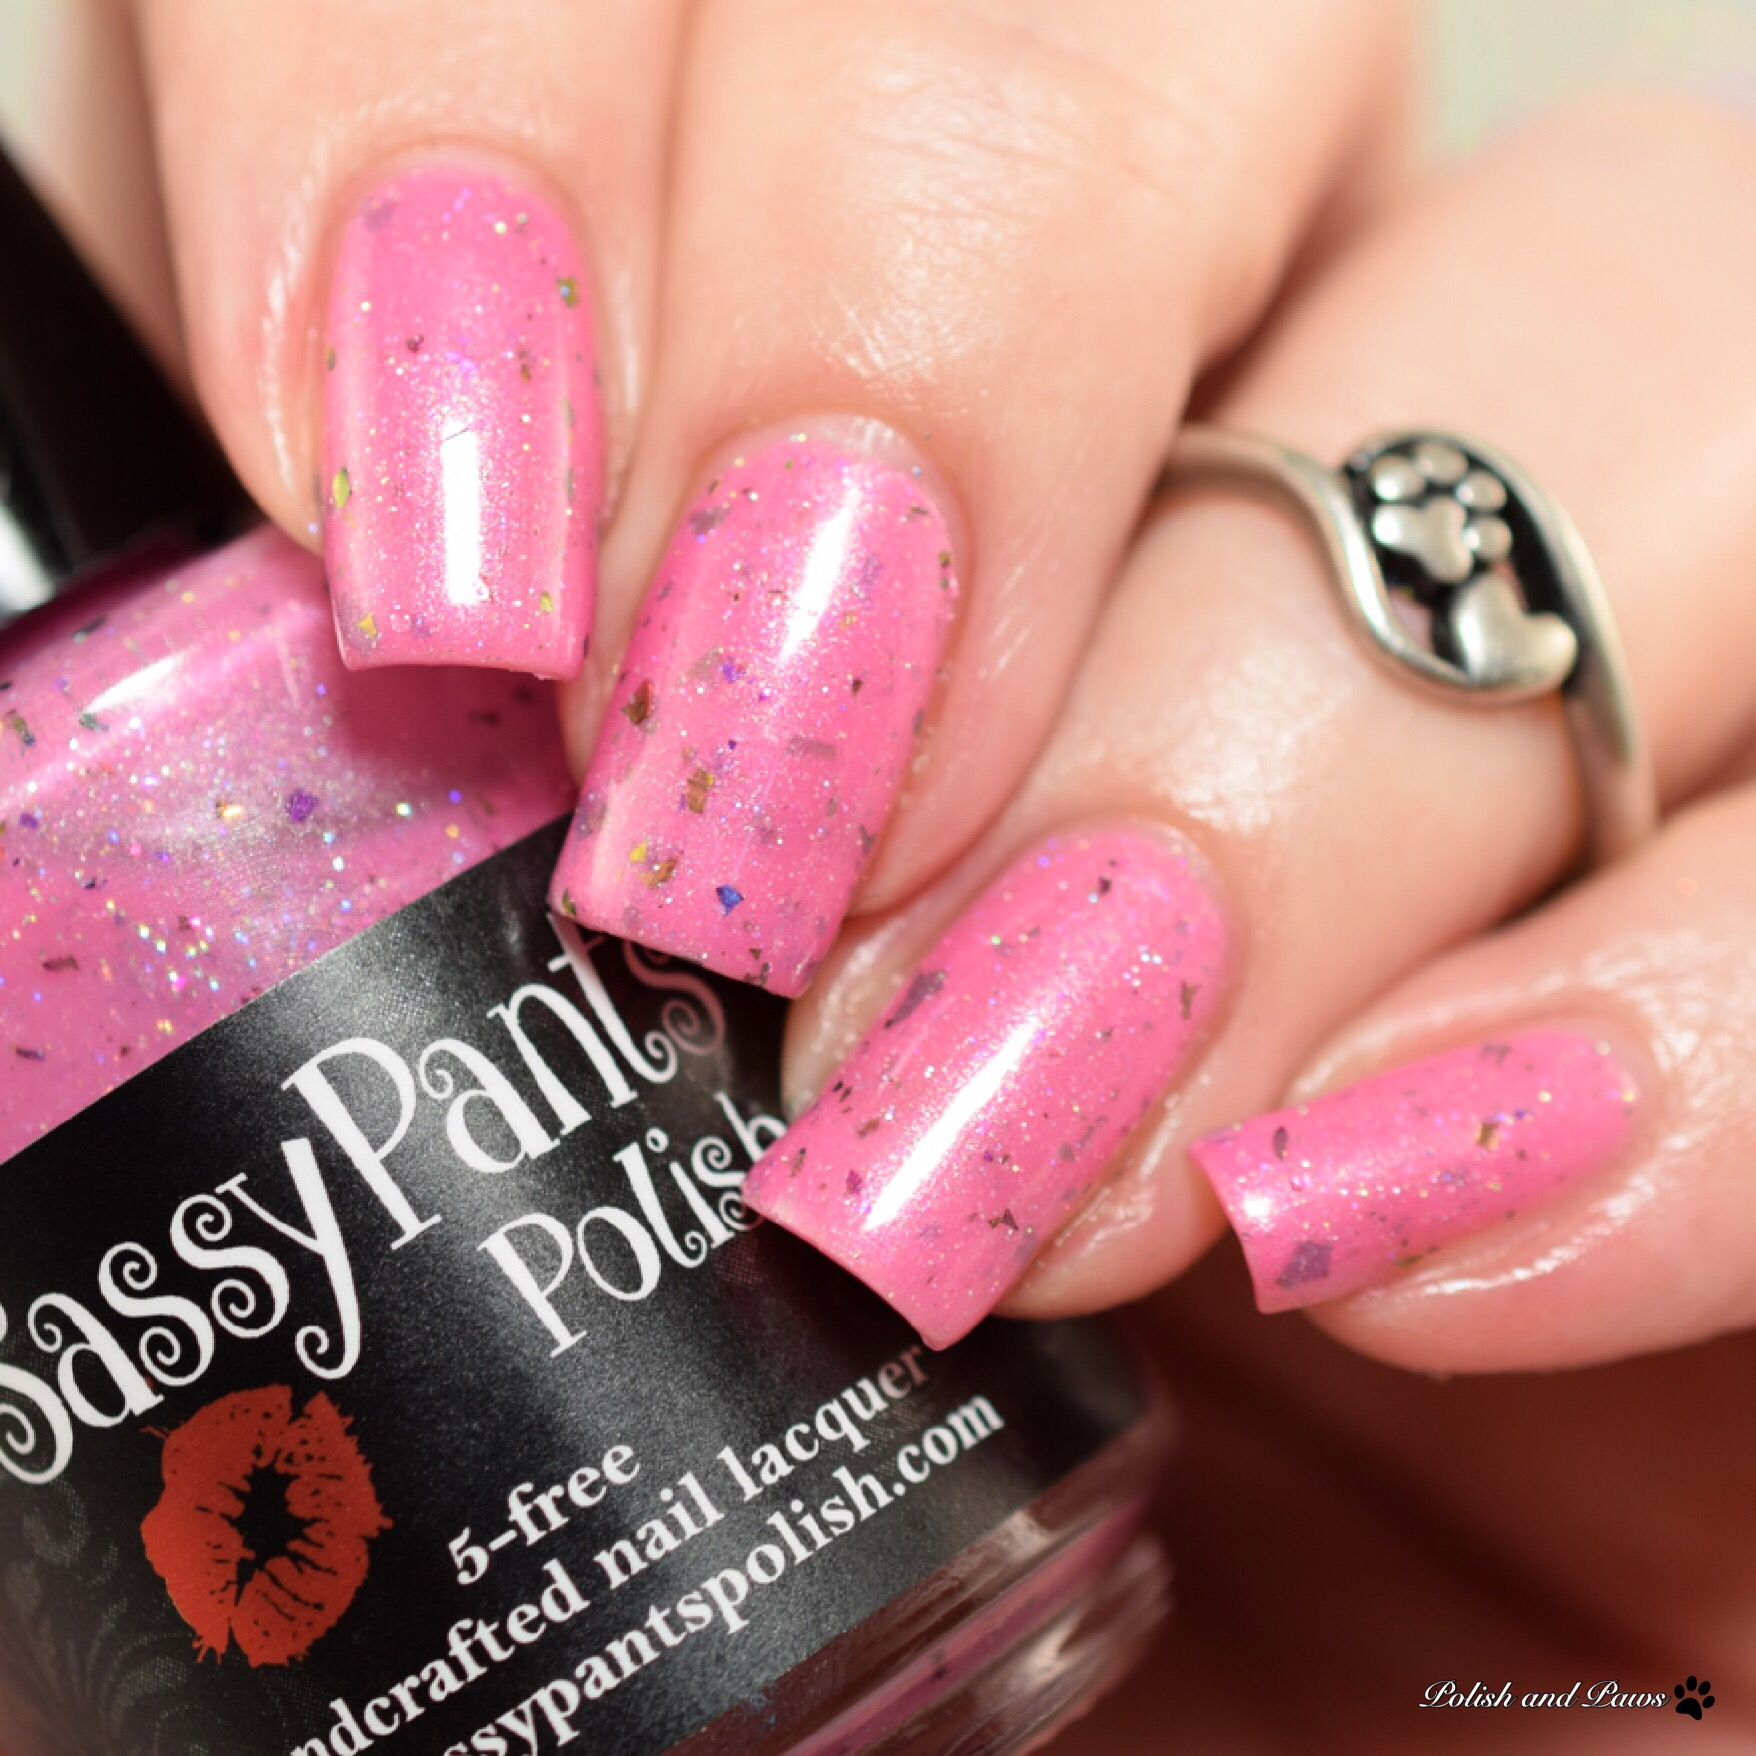 Sassy Pants Polish Mermaid's Love